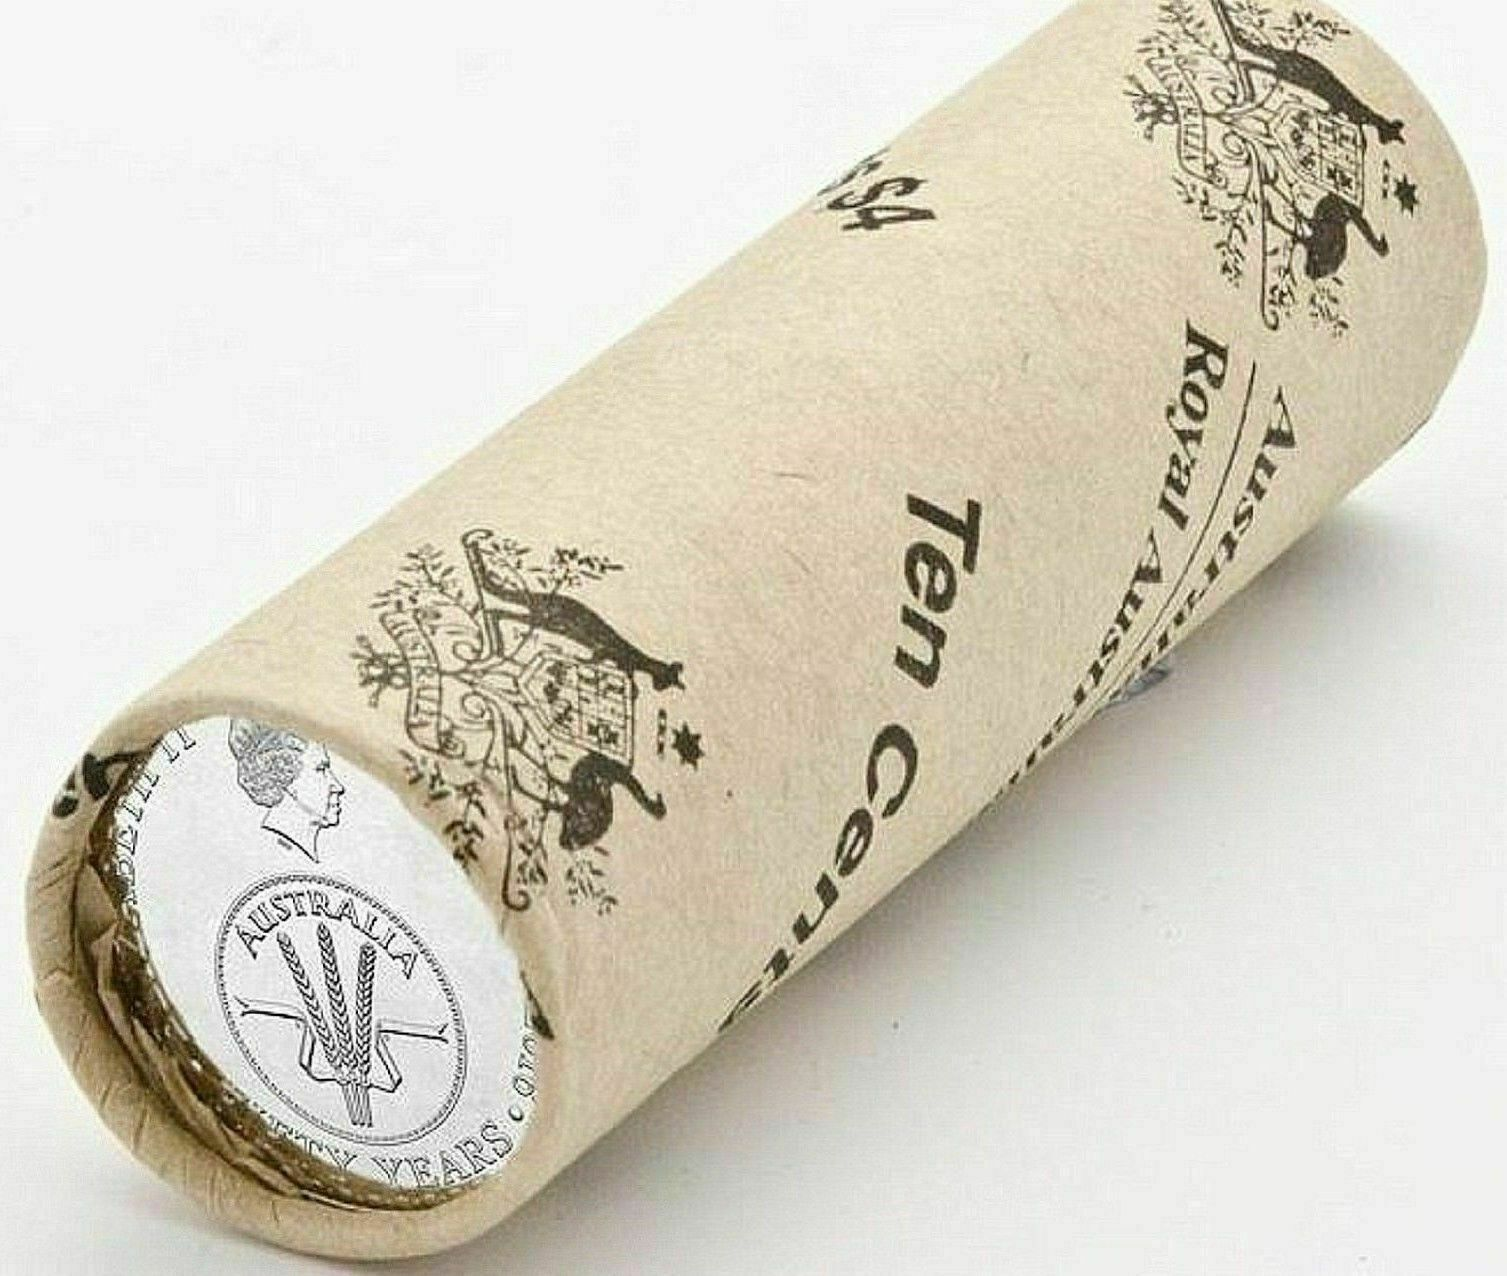 10 Cents RAM Mint Coin Roll Australia 2016 Changeover of Decimal Currency